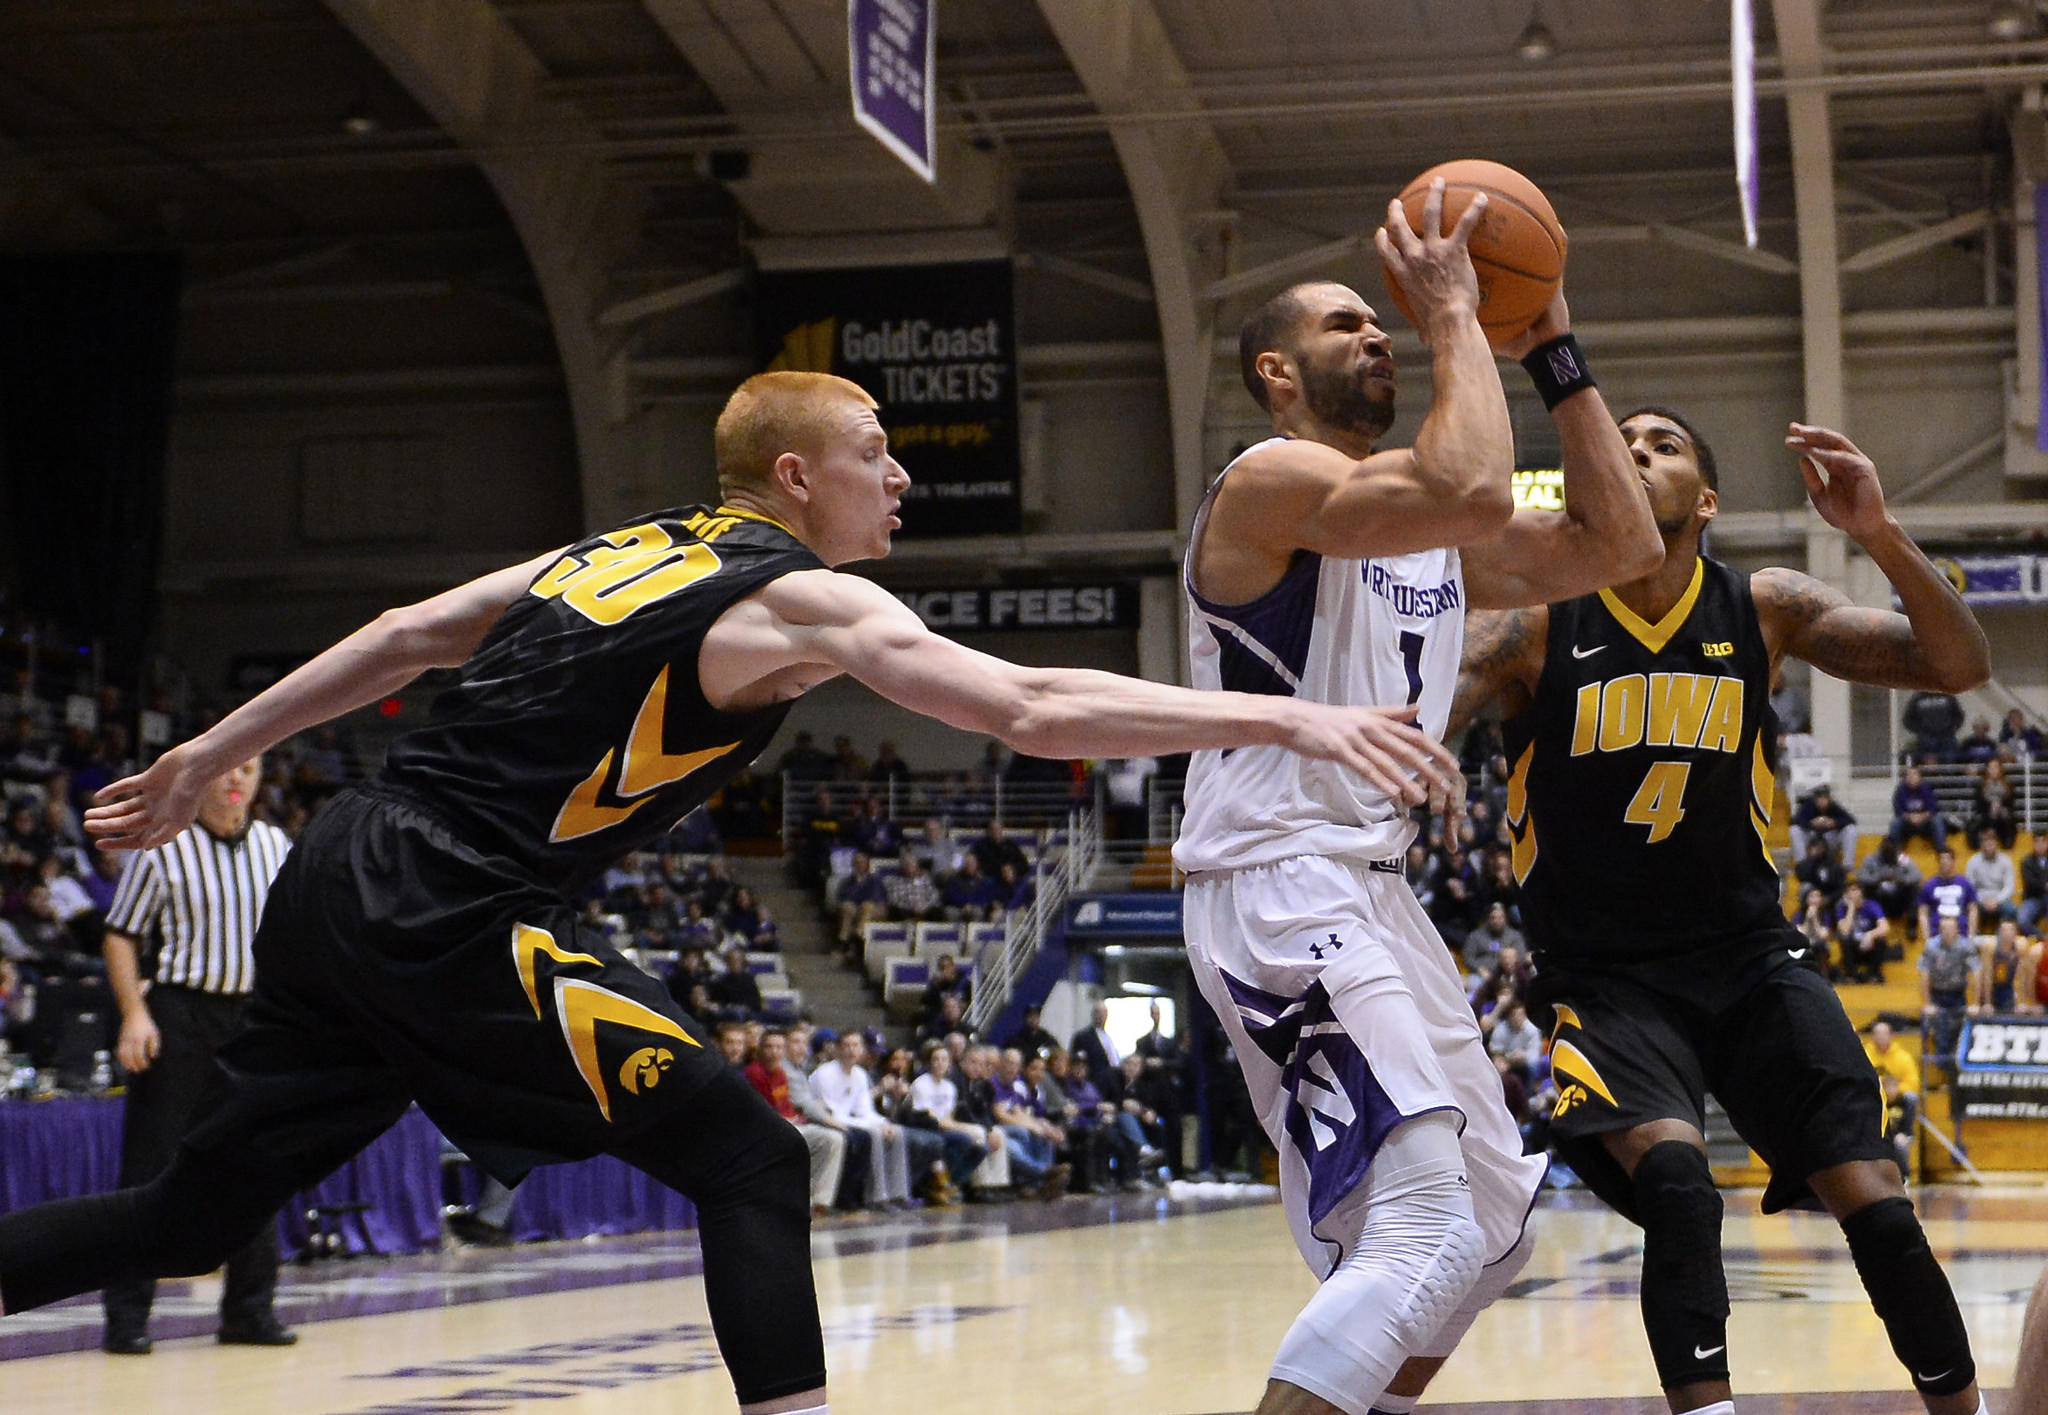 Northwestern guard Drew Crawford shoots against Iowa forward Aaron White (30) and guard Roy Devyn Marble (4) during the first half at Welsh-Ryan Arena.